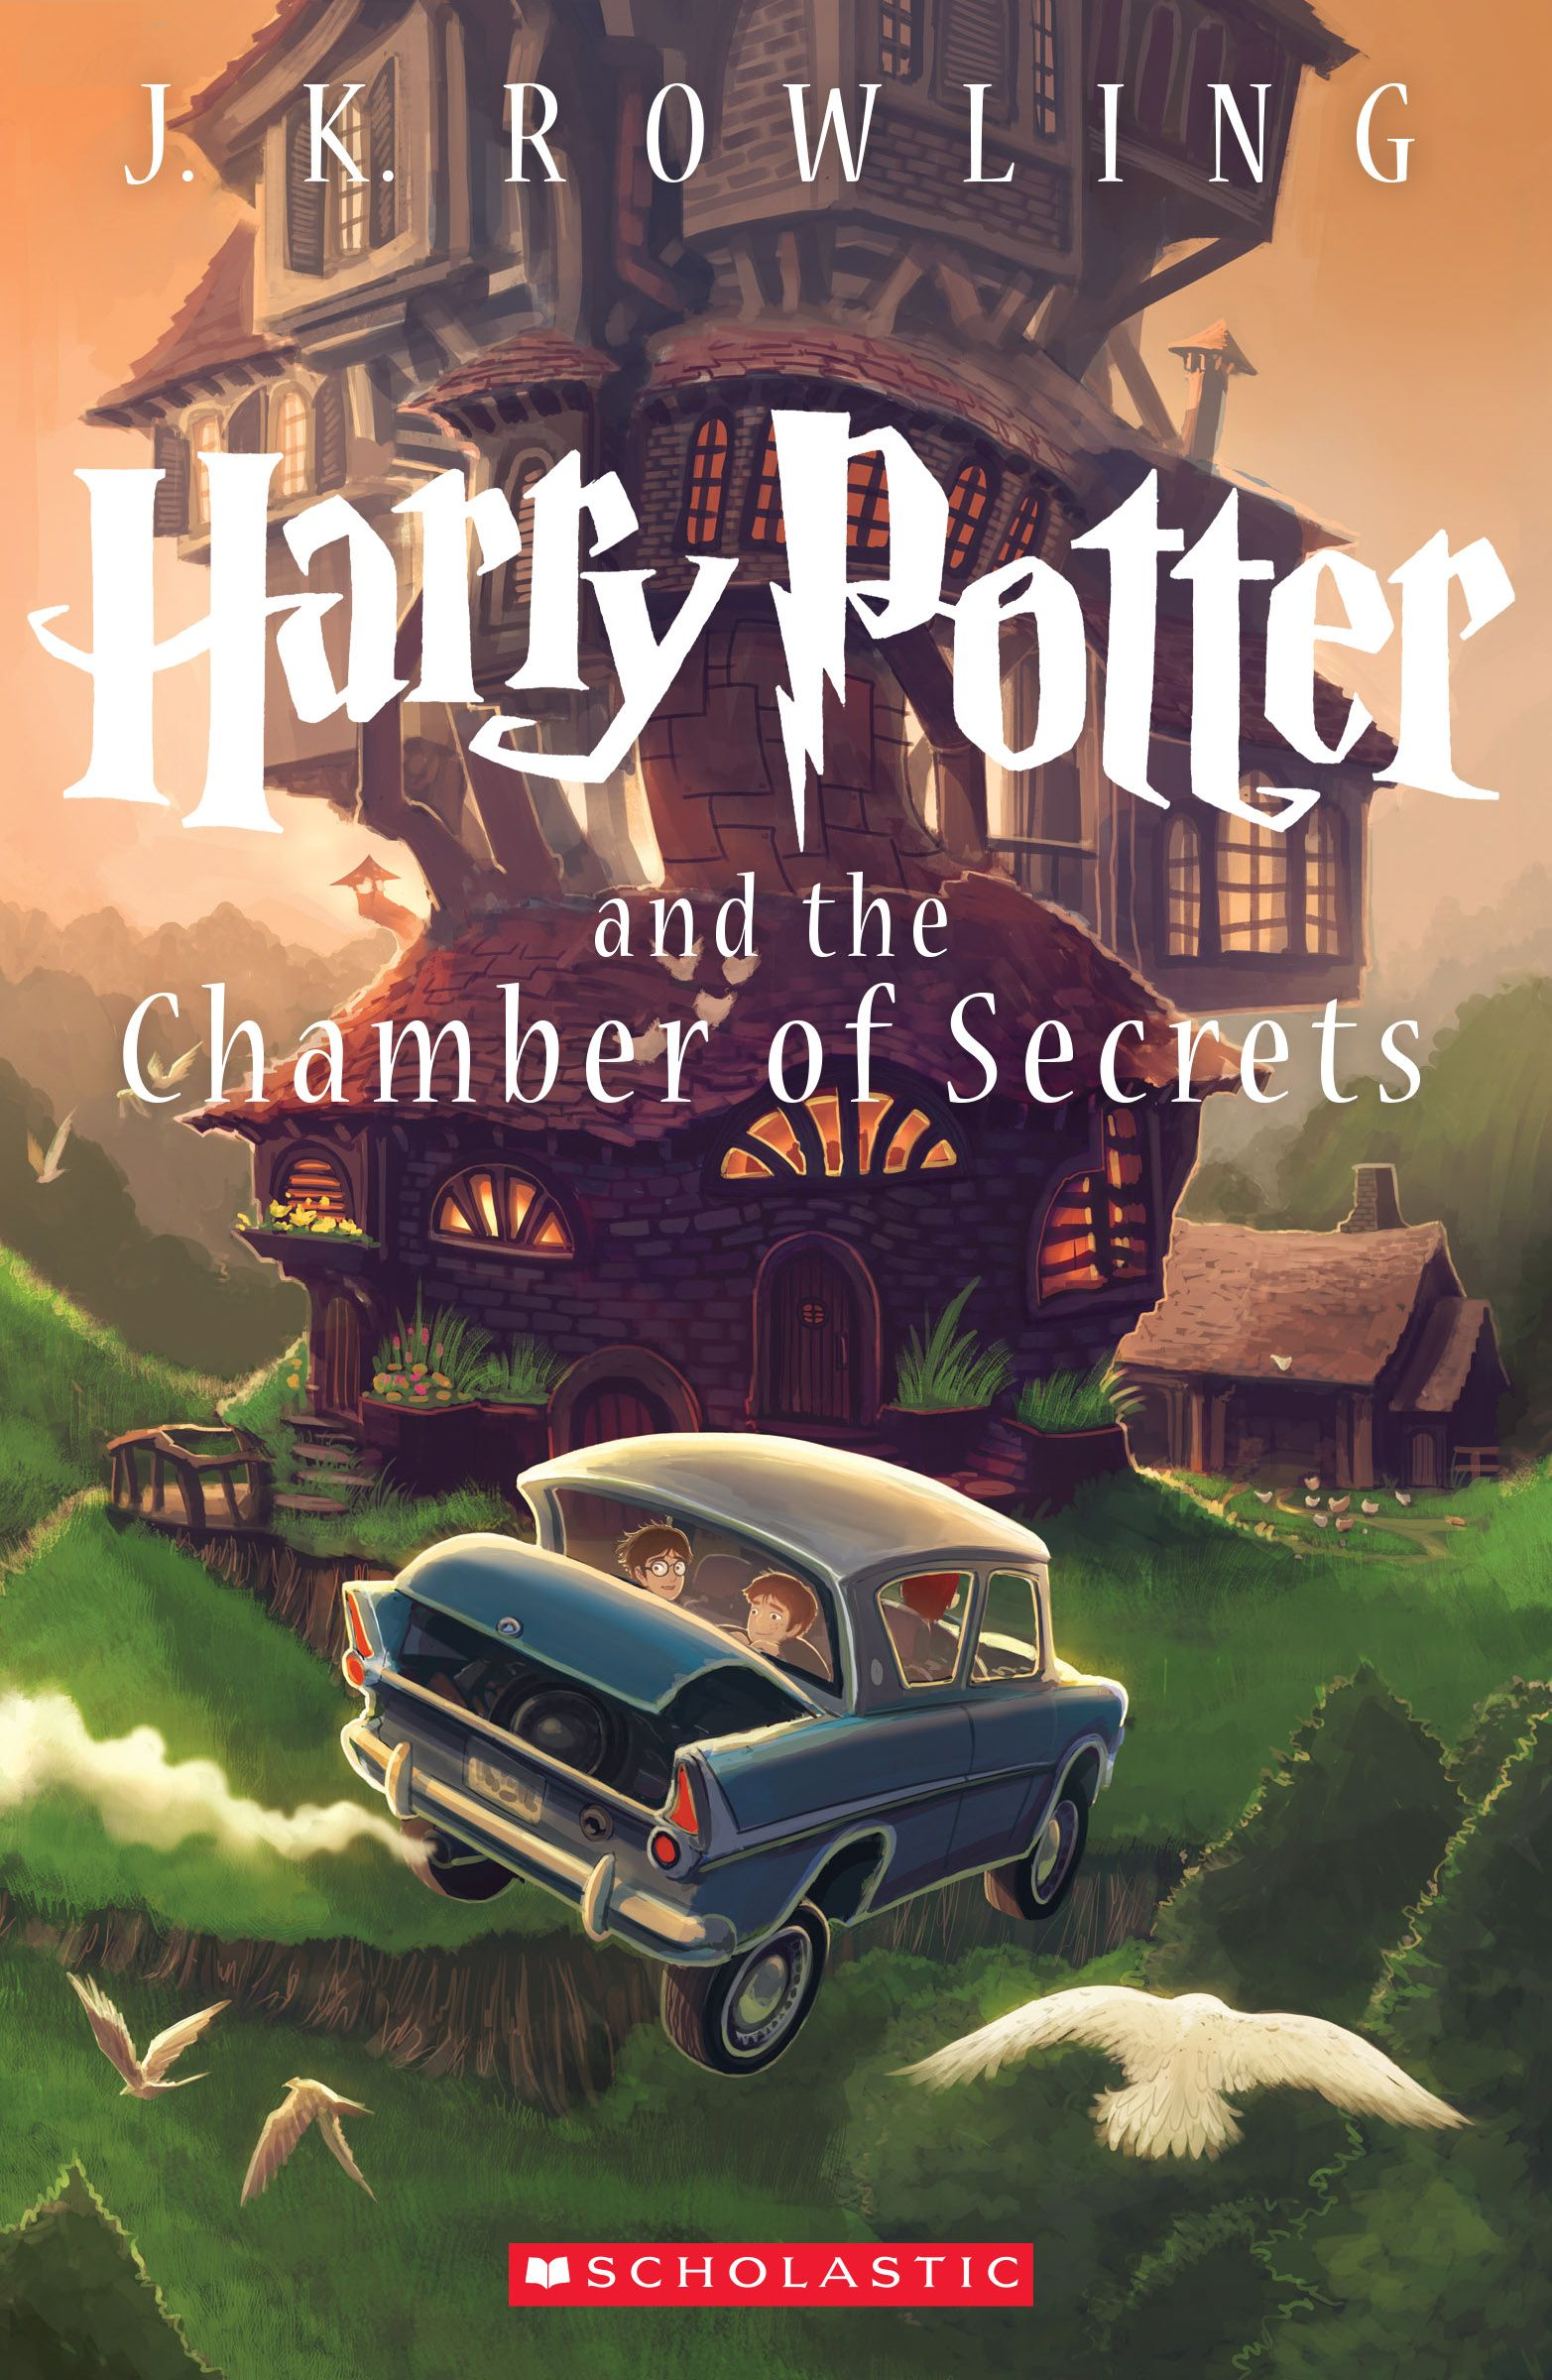 New 'Harry Potter and the Chamber of Secrets' book cover unveiled ...